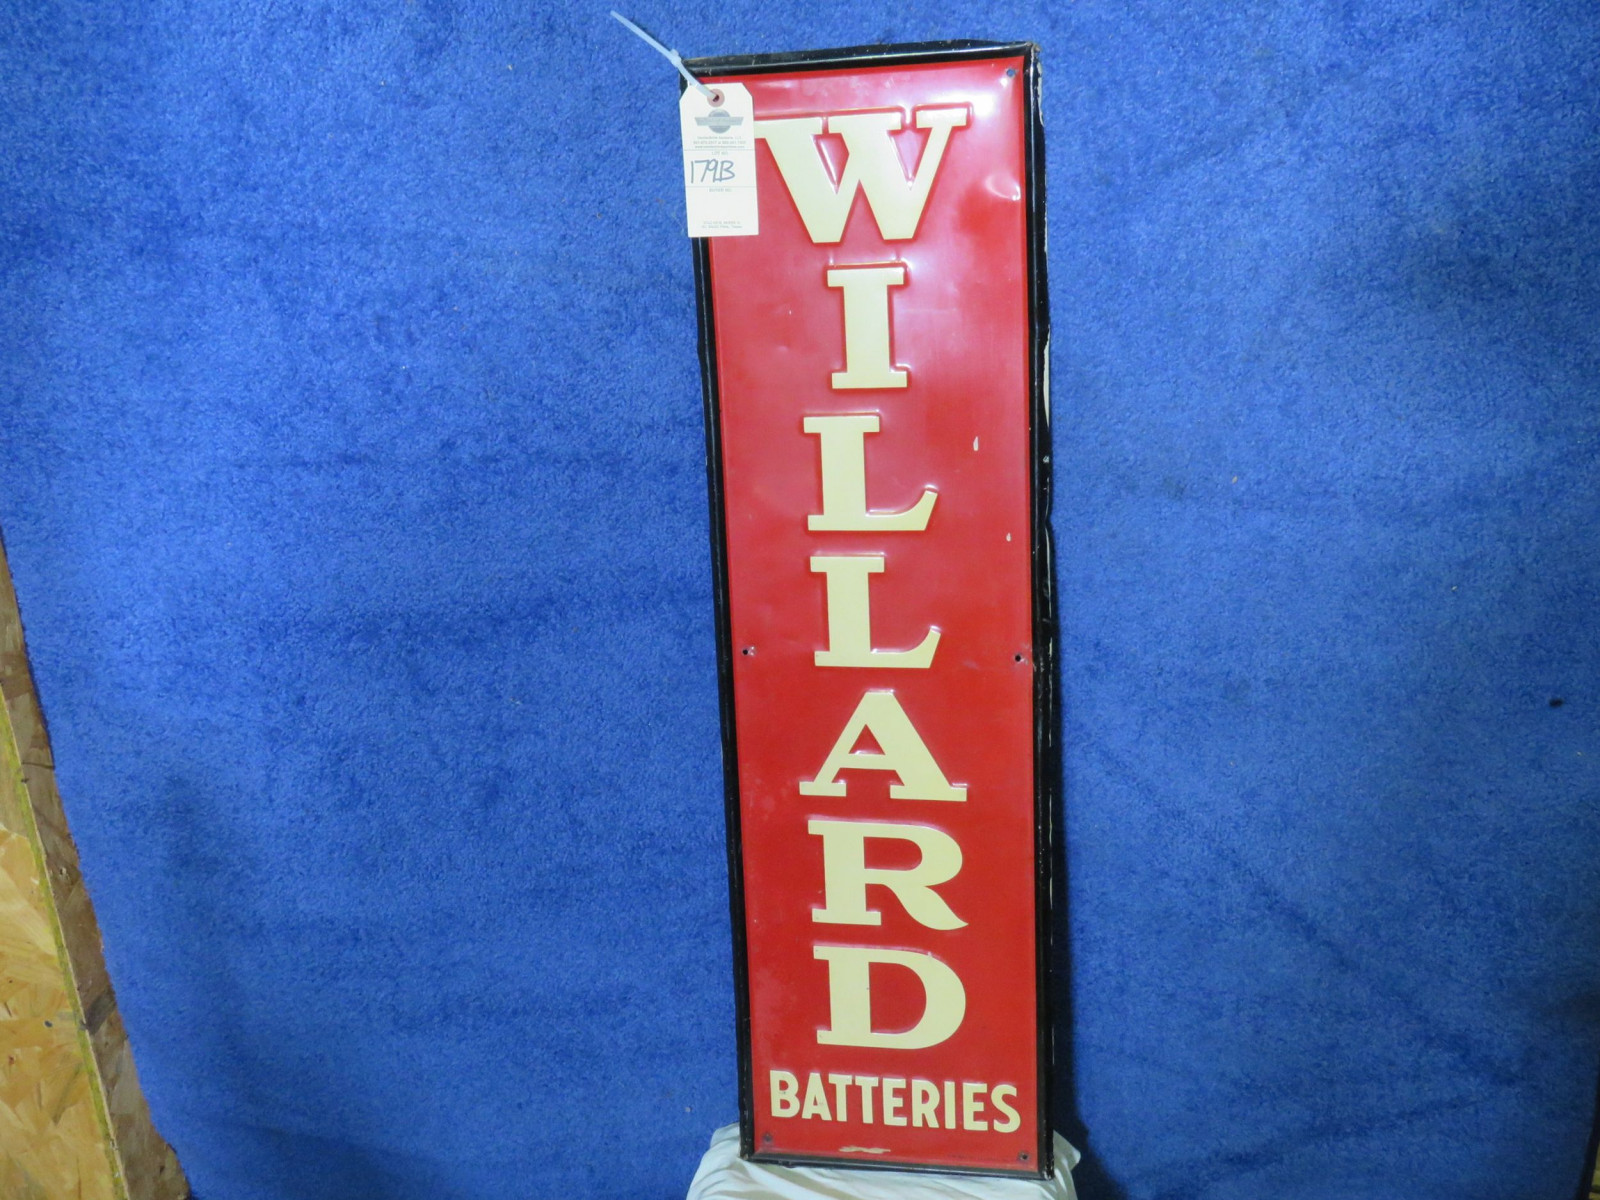 Willard Batteries SS Painted Tin Sign - Image 1